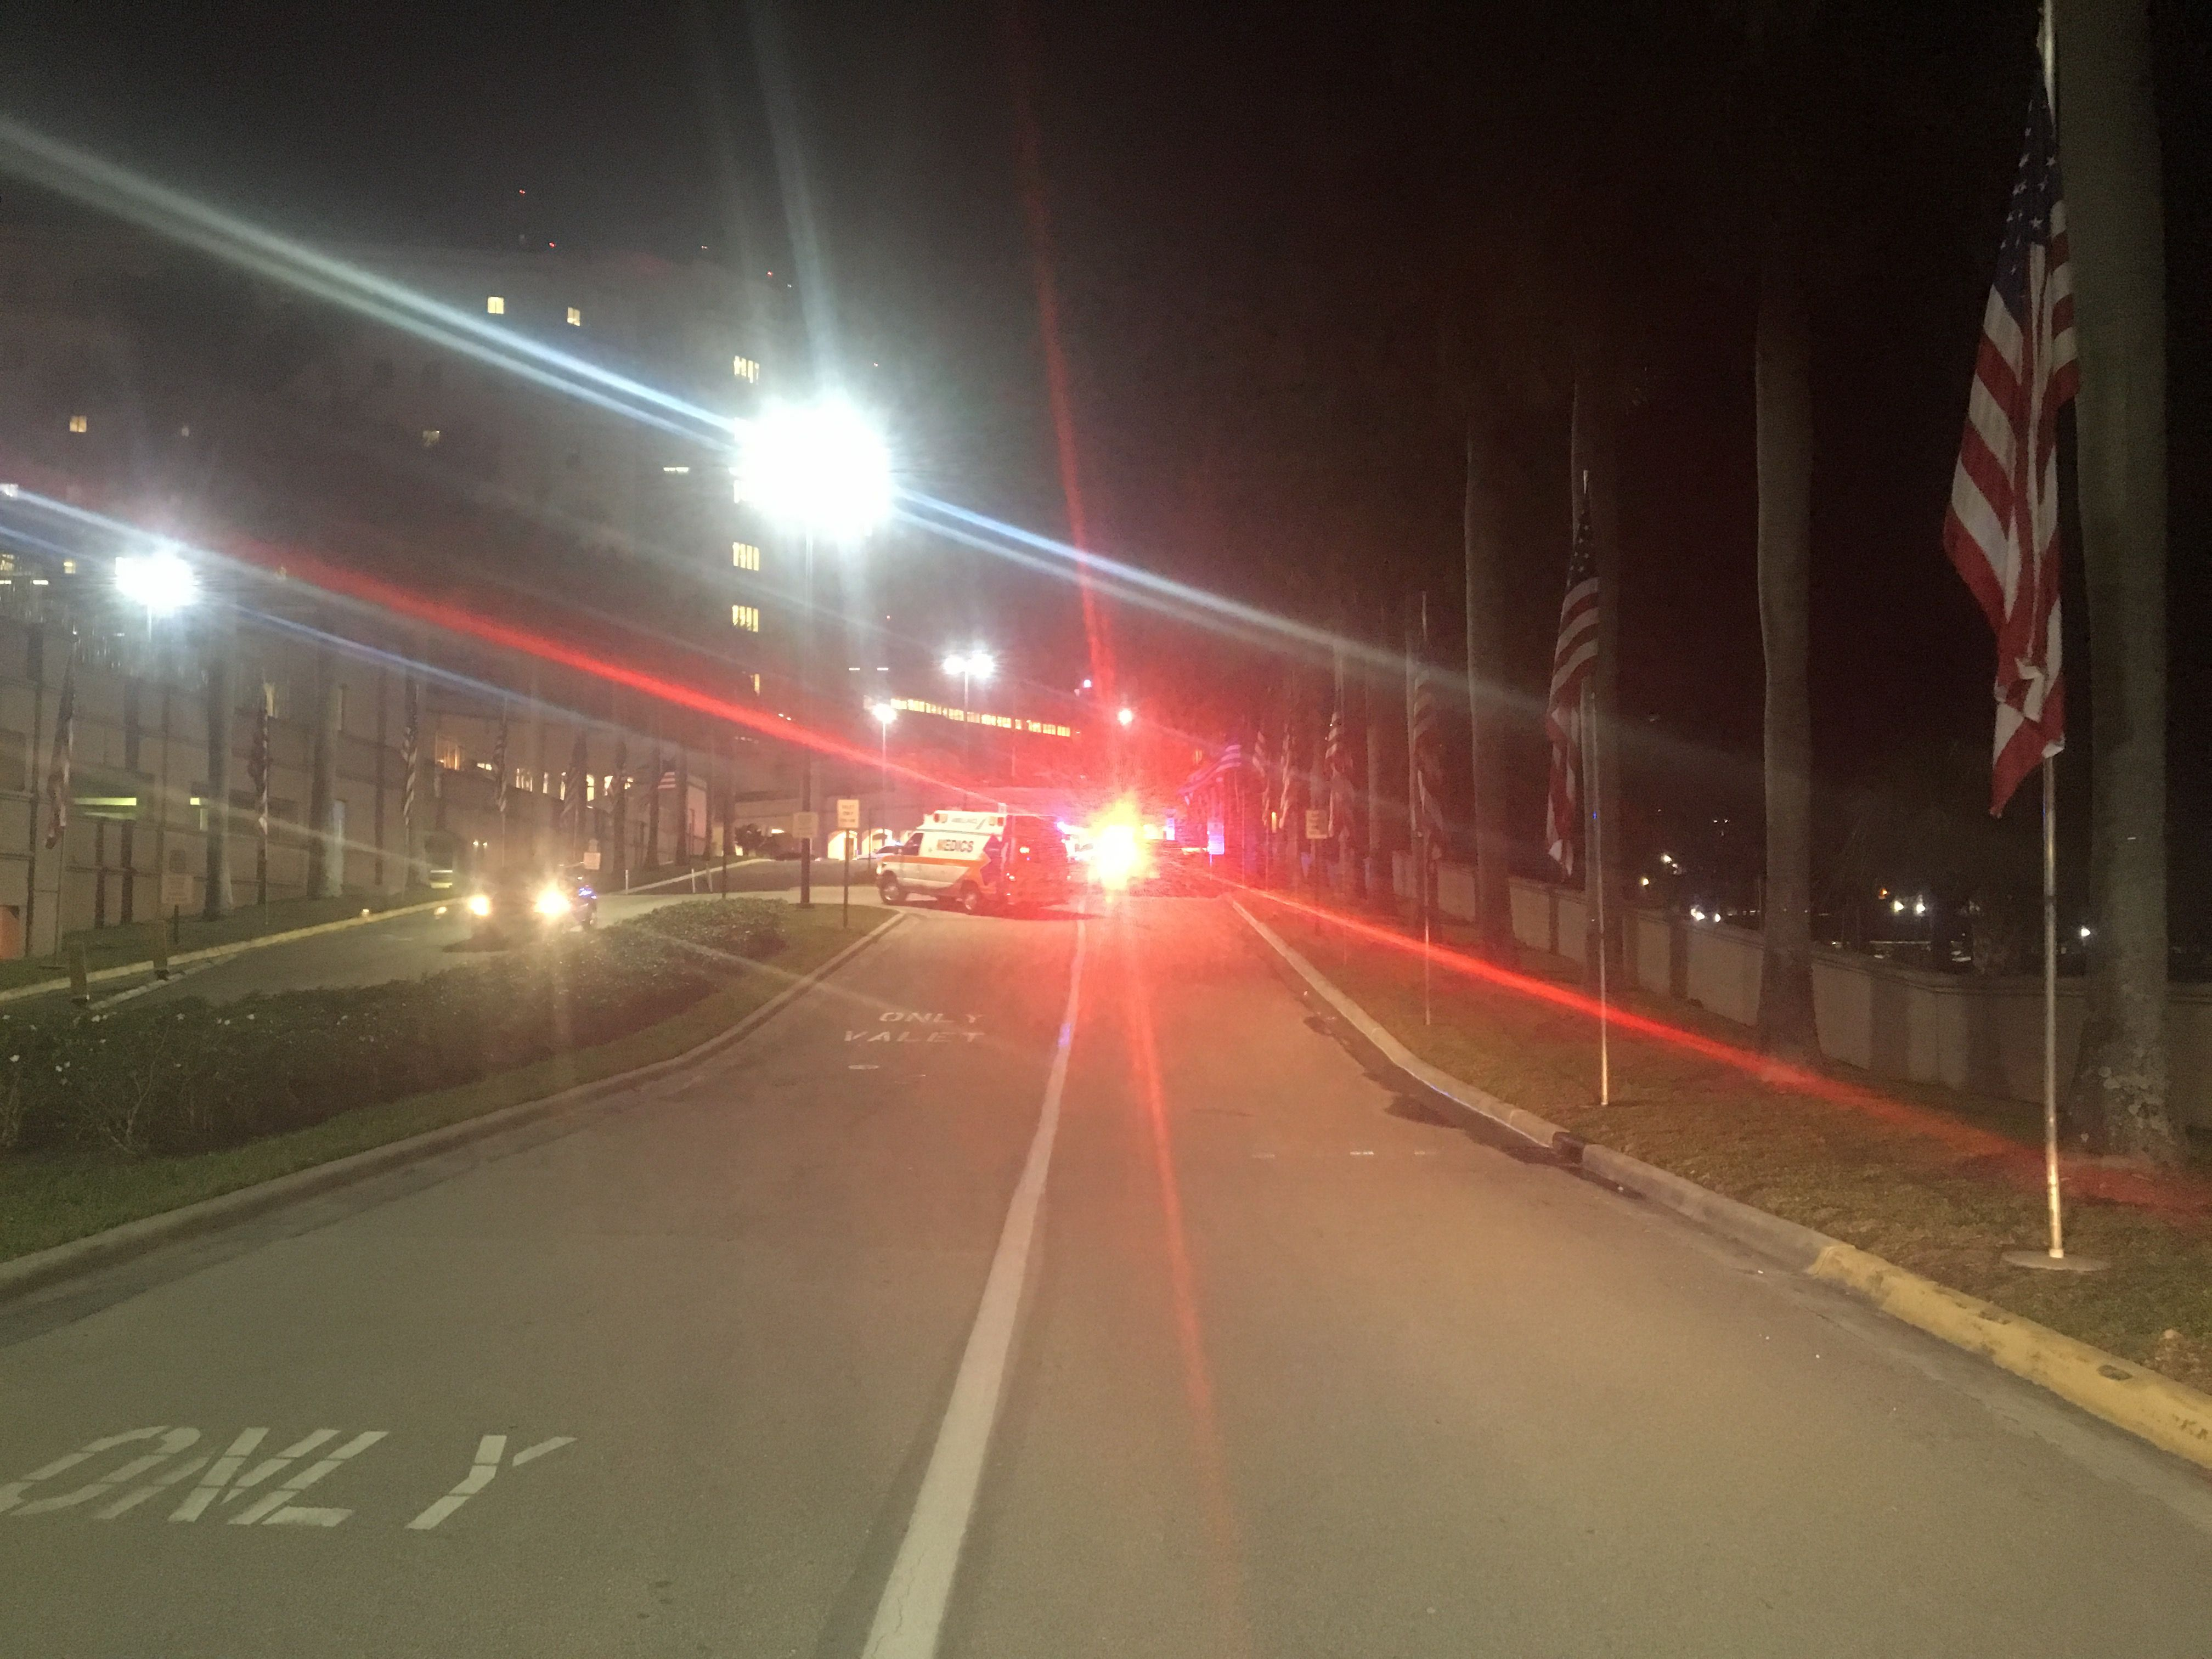 One person shot at west palm beach va medical center - Palm beach gardens mall shooting ...